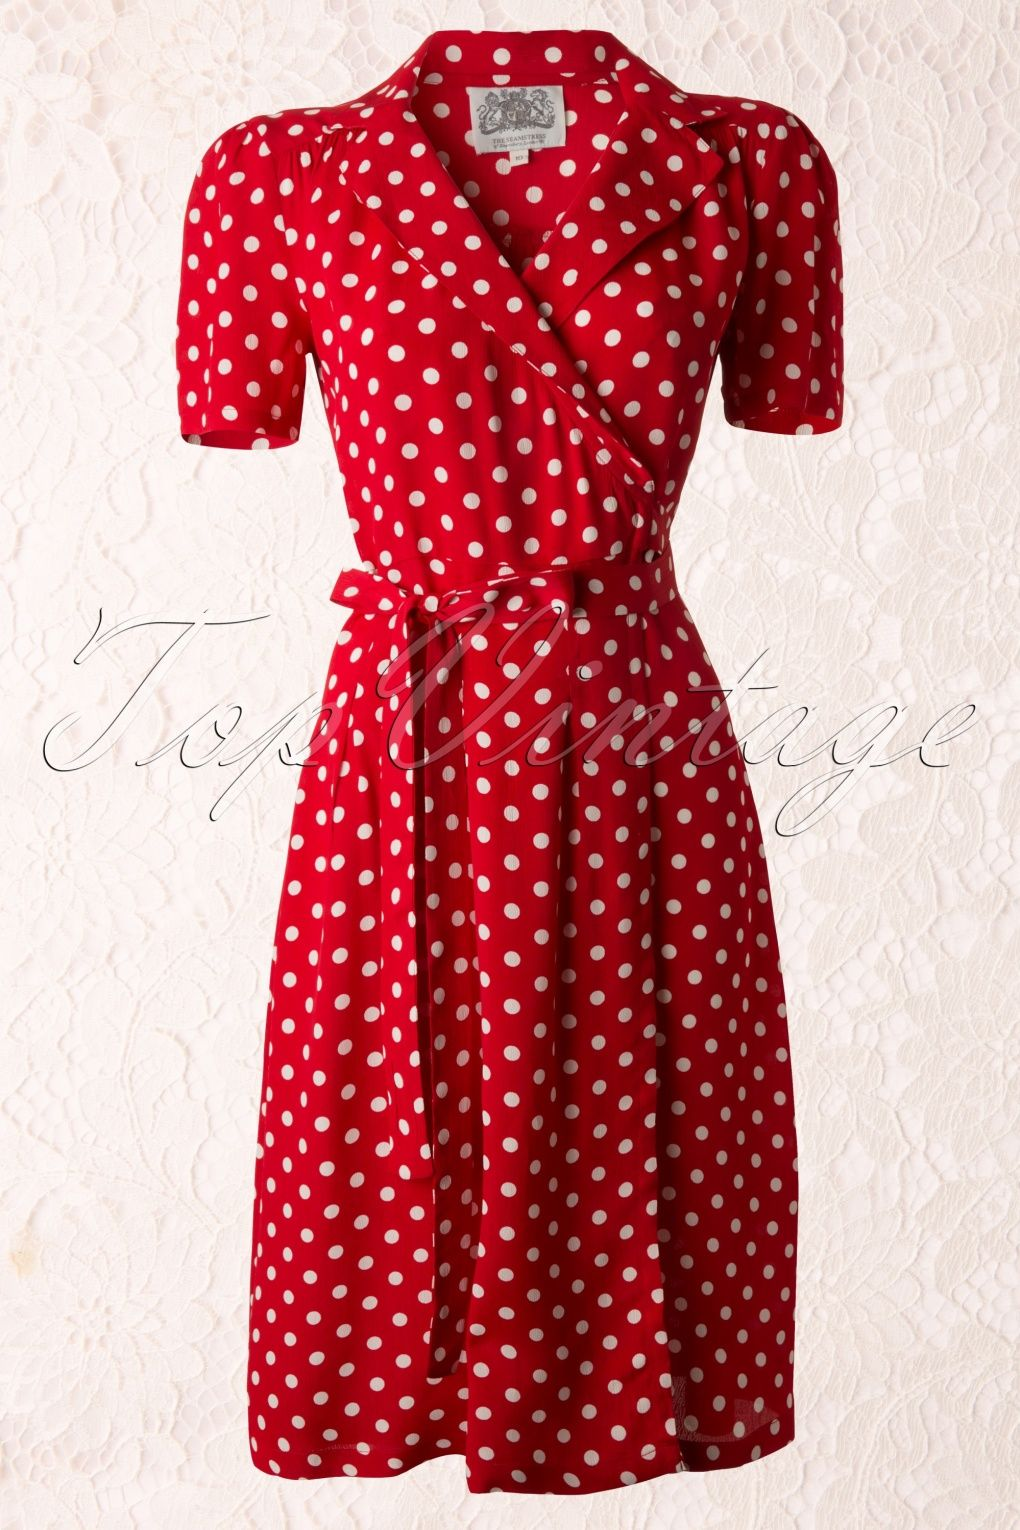 The Seamstress Of Bloomsbury 40s Peggy Wrapover Dress In Red And White Red Polka Dot Dress Vintage Fashion Fashion [ 1530 x 1020 Pixel ]